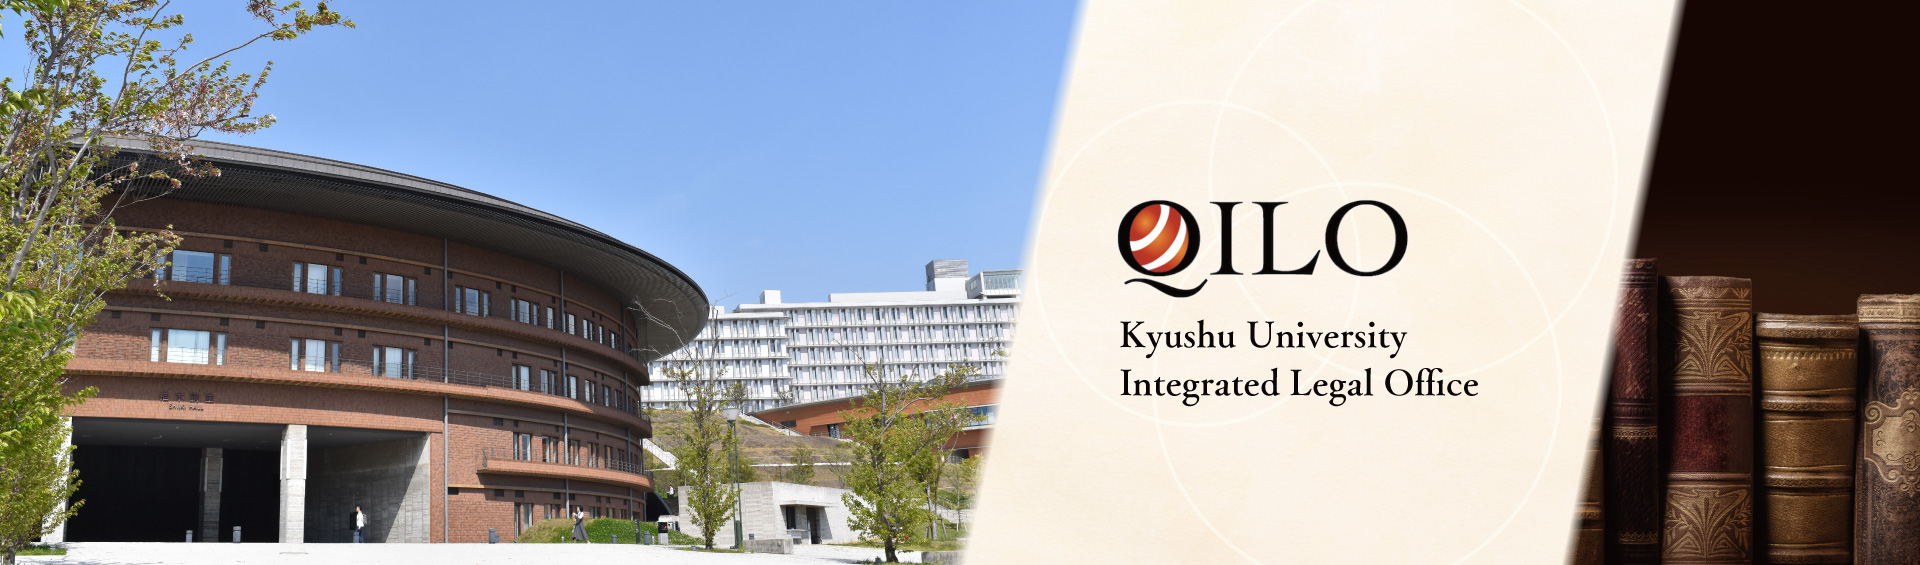 Kyushu University International Legal Office